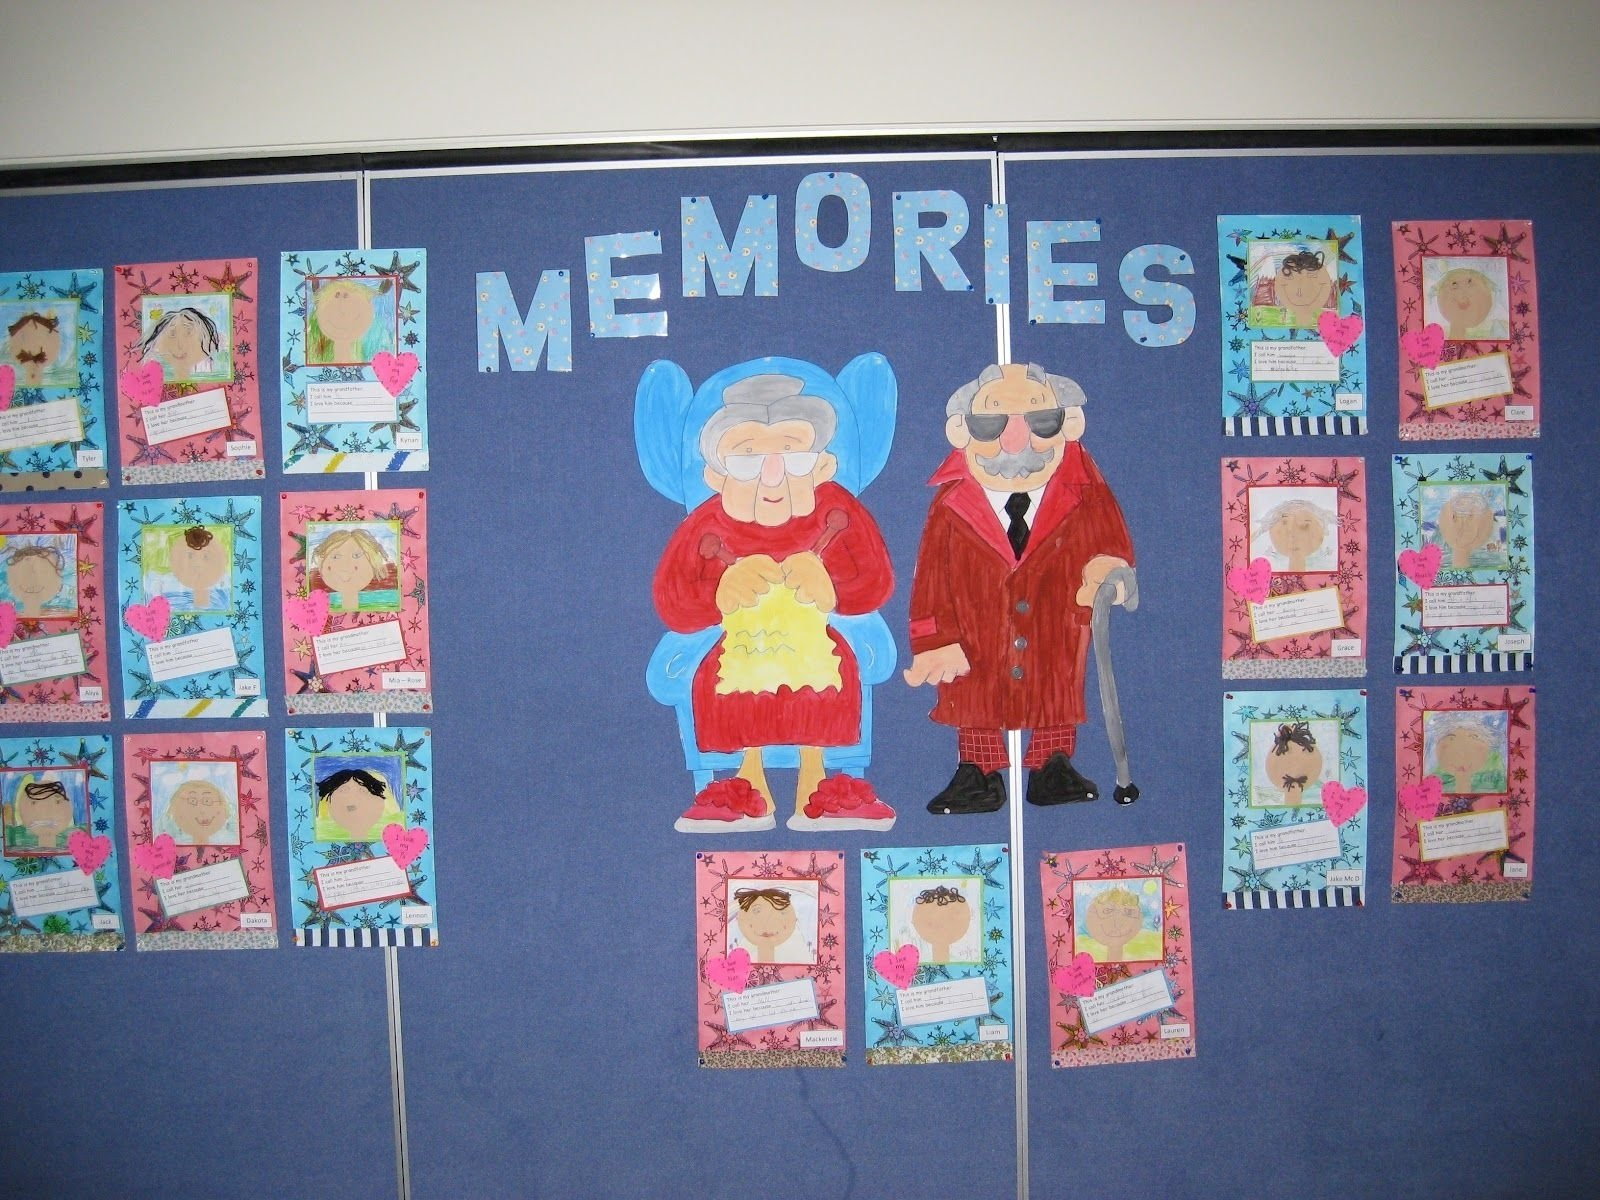 grandparents day crafts-lol badges for grandparents, draw pictures